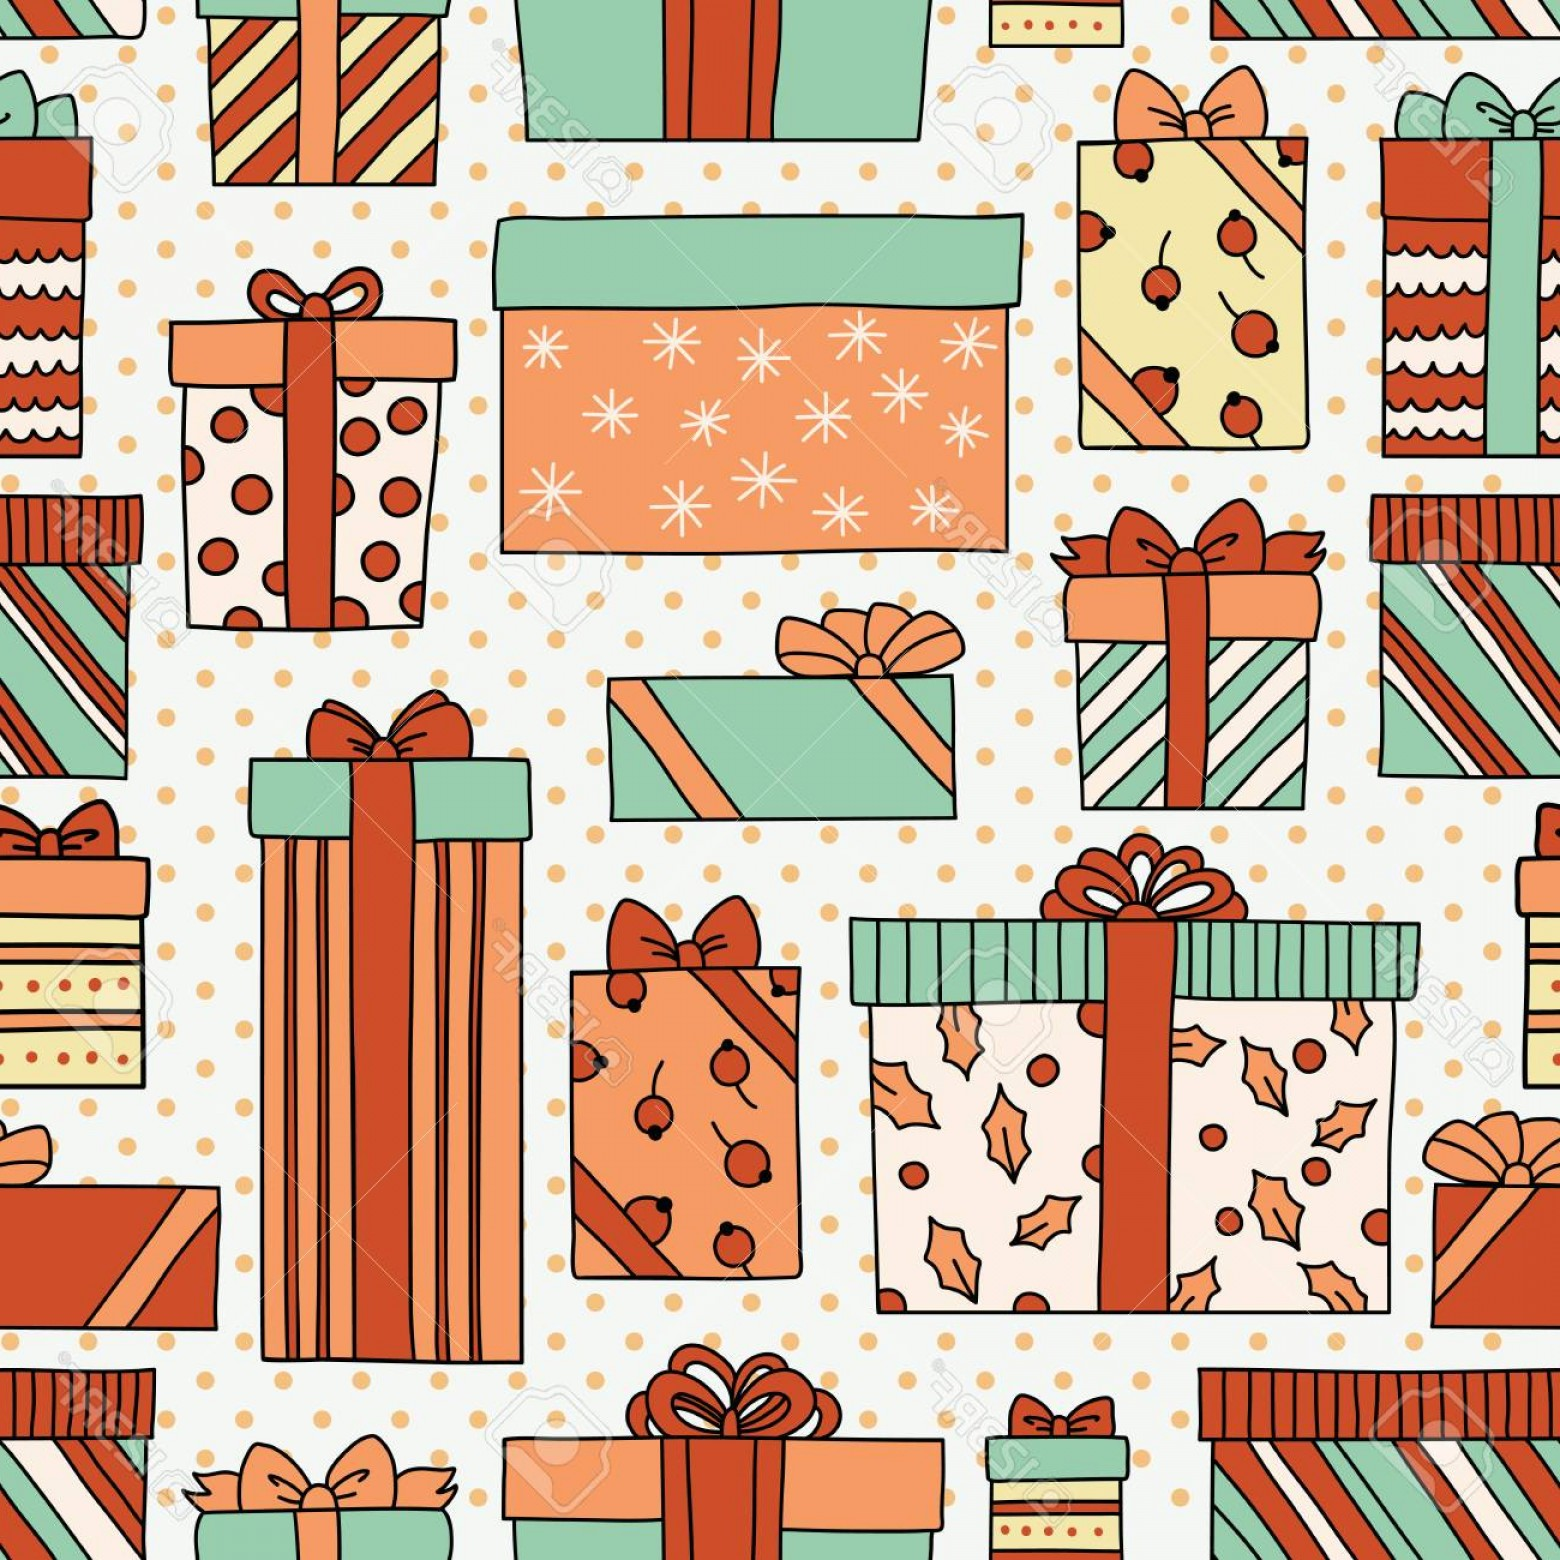 Free Vintage Vector Desktop Wallpaper: Photostock Vector Vintage Christmas Or Birthday Seamless Pattern With Gift Boxes Can Be Used For Desktop Wallpaper Or